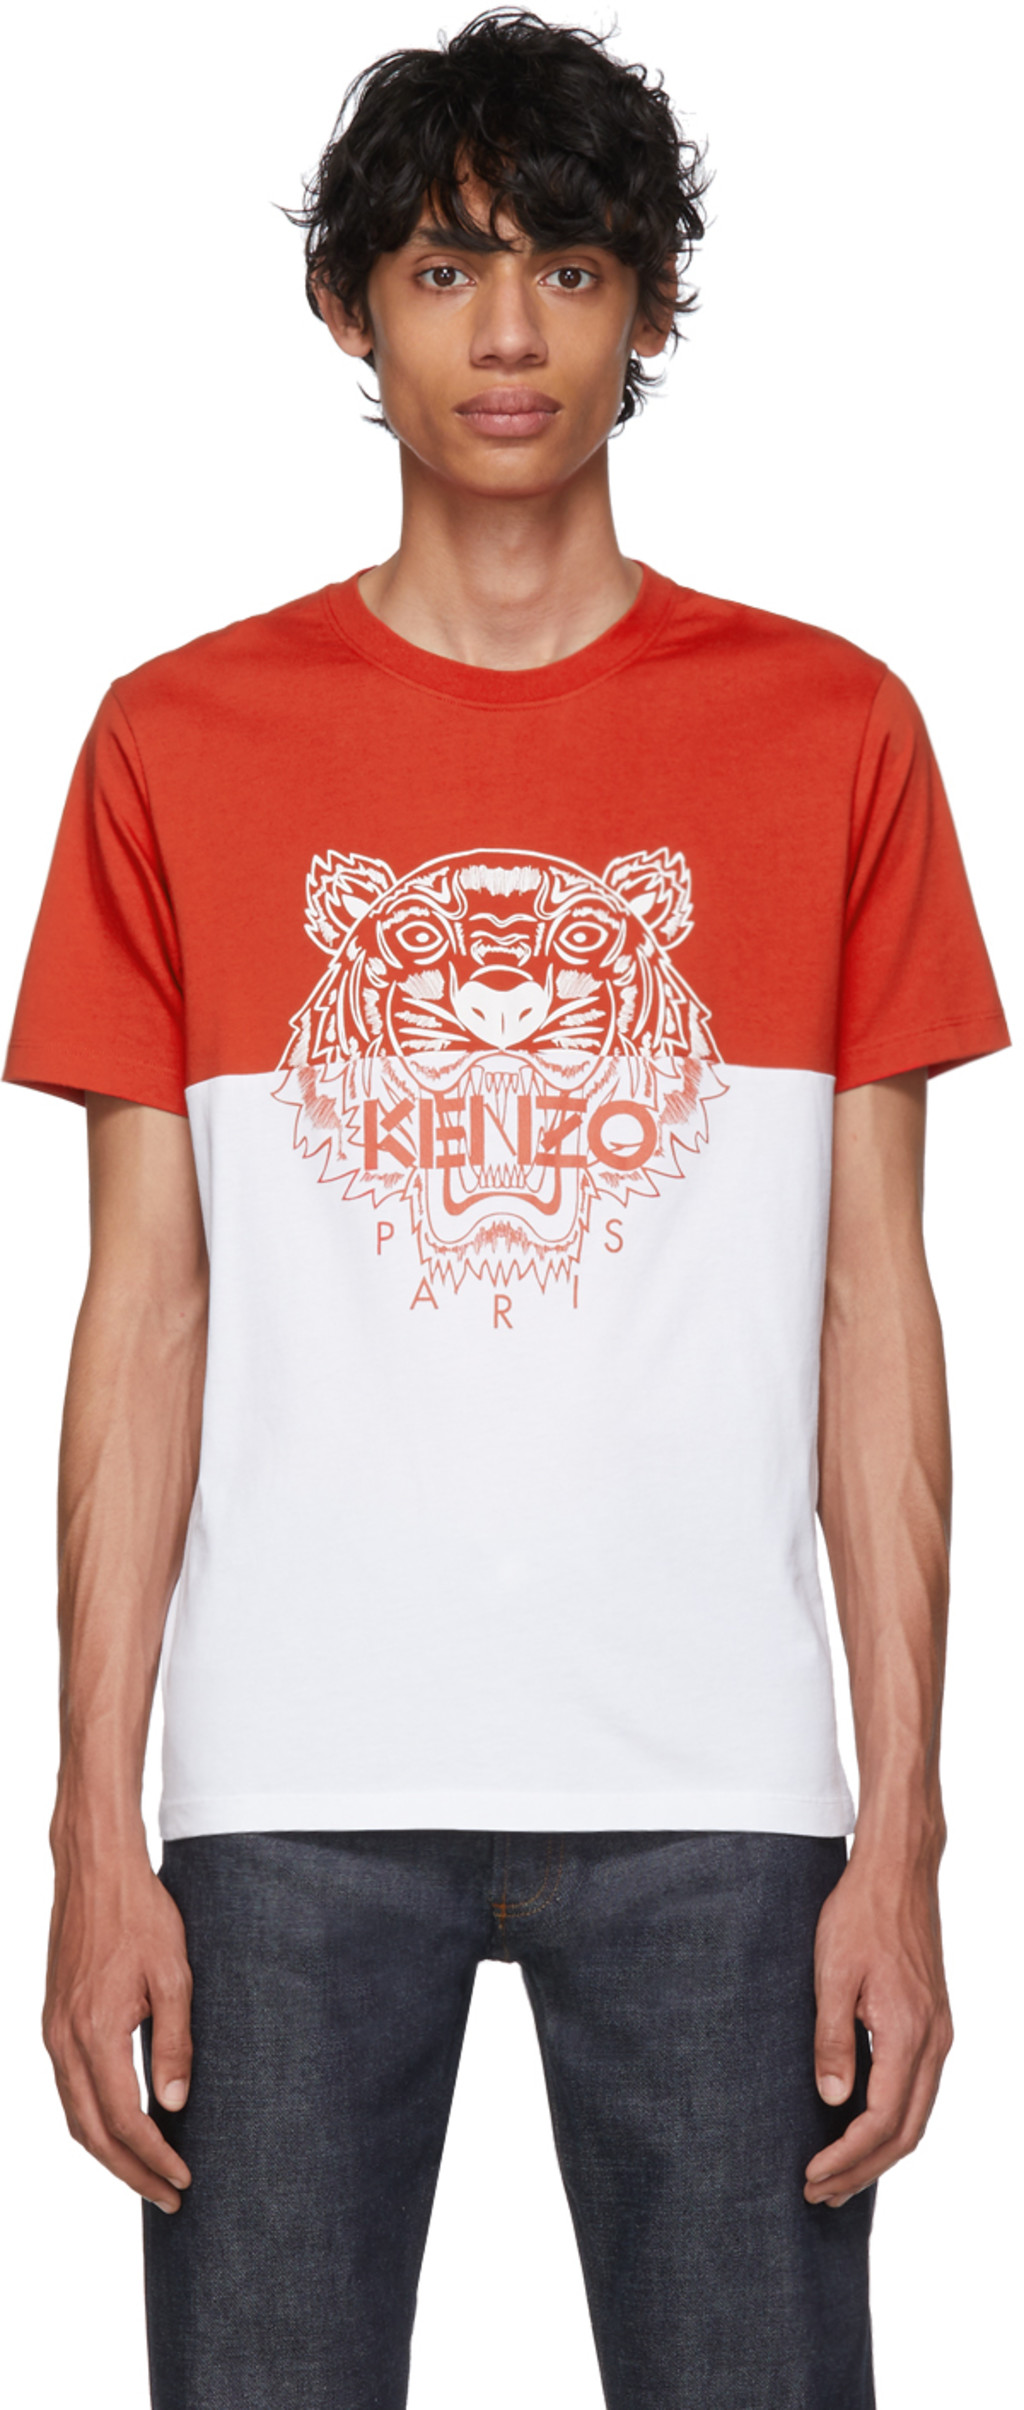 5641bc6fa Kenzo for Men SS19 Collection | SSENSE UK